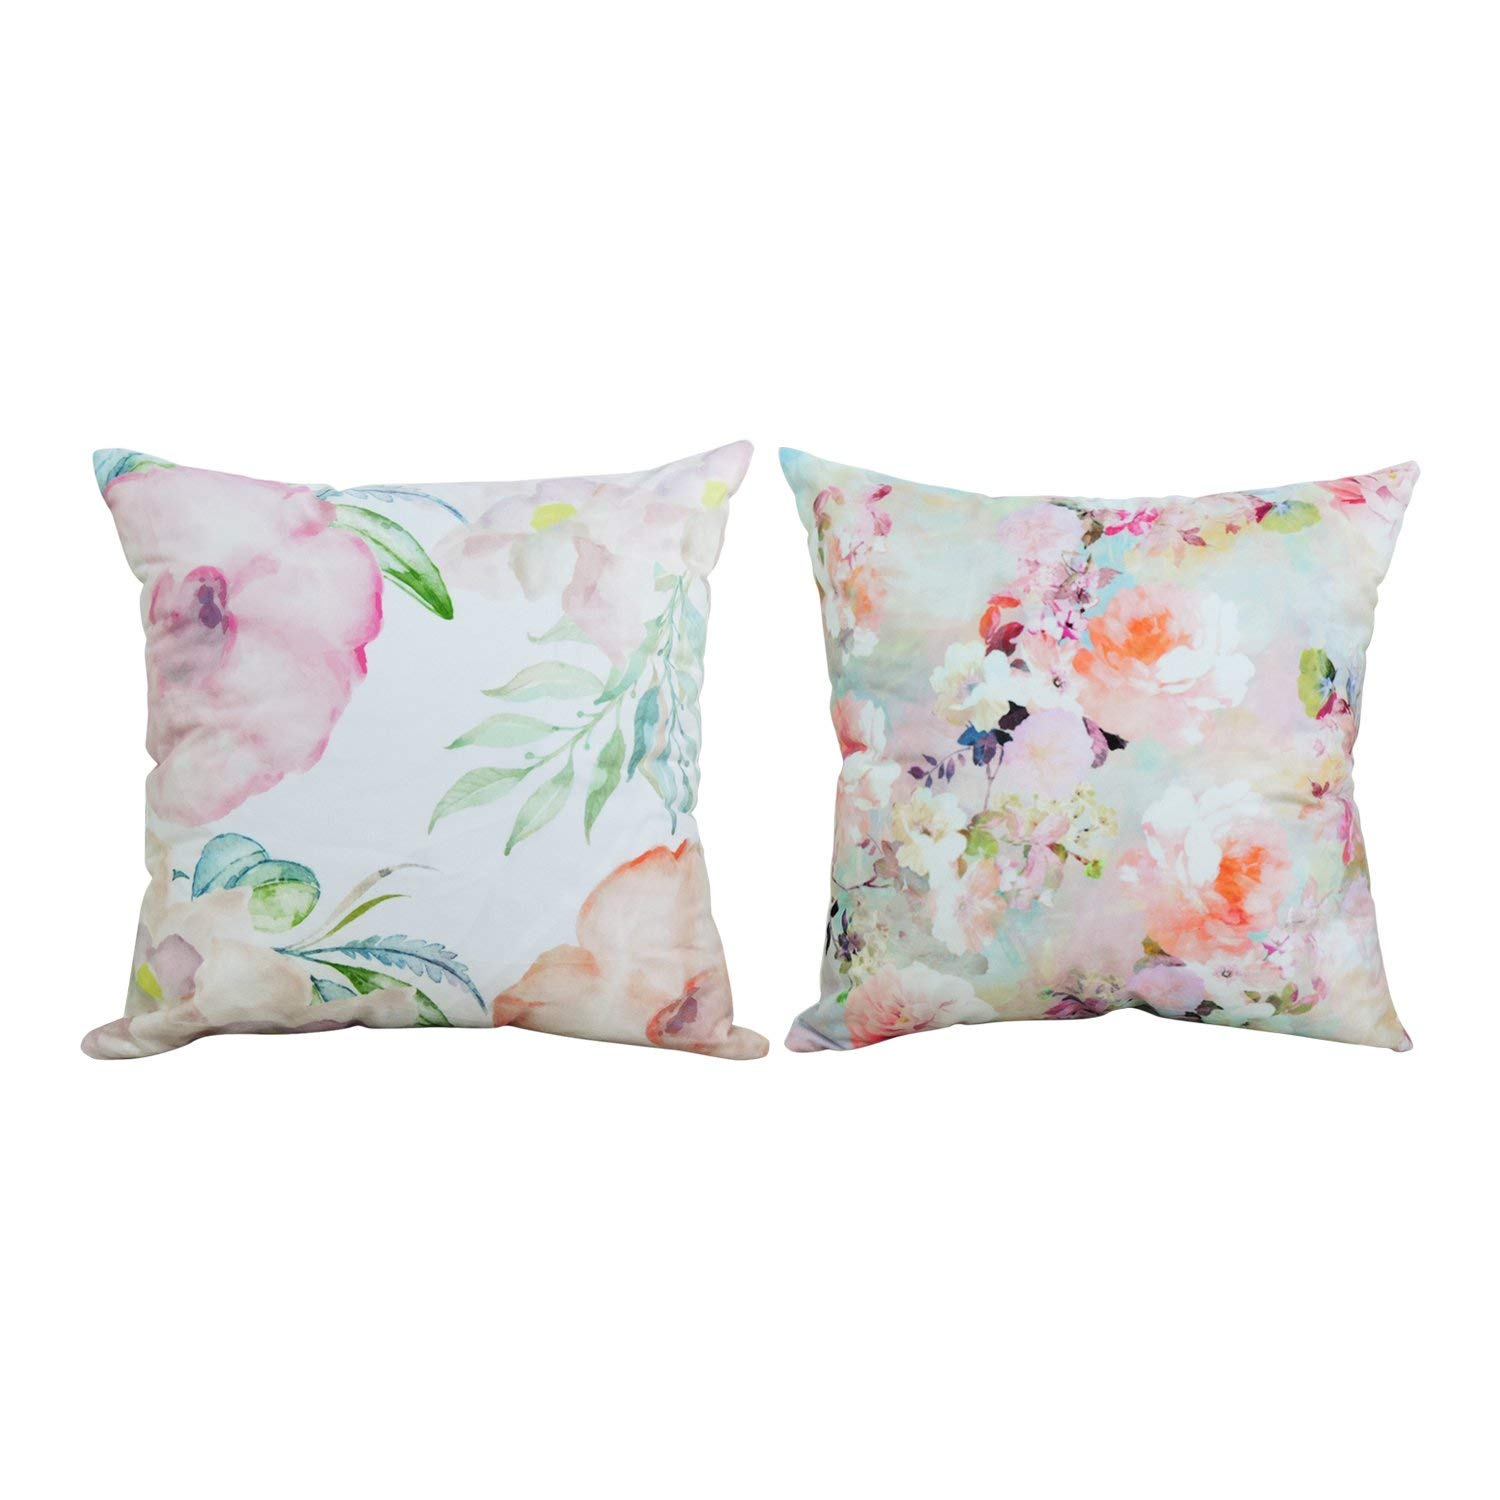 spring floral pillow covers - peonies and watercolor perfect for spring and is so easy to store..budget friendly affiliate link